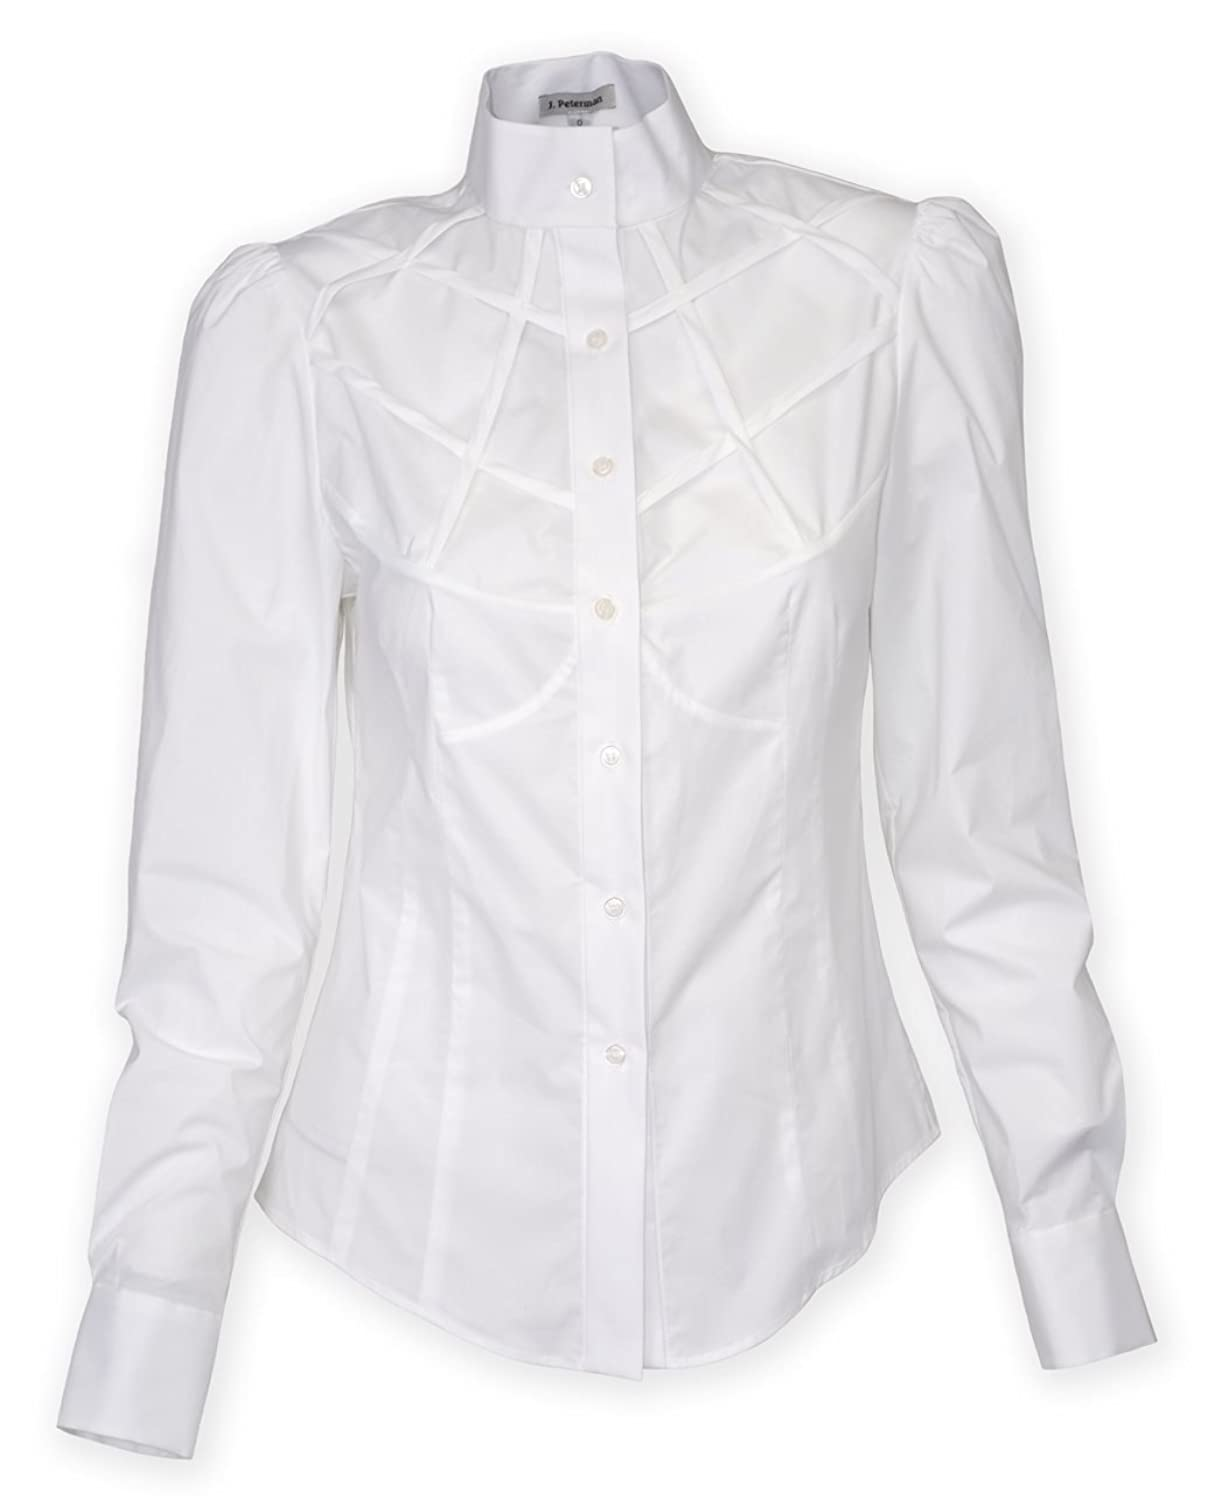 Edwardian Style Blouses Mrs. Jones Lattice Yoke Blouse $205.85 AT vintagedancer.com